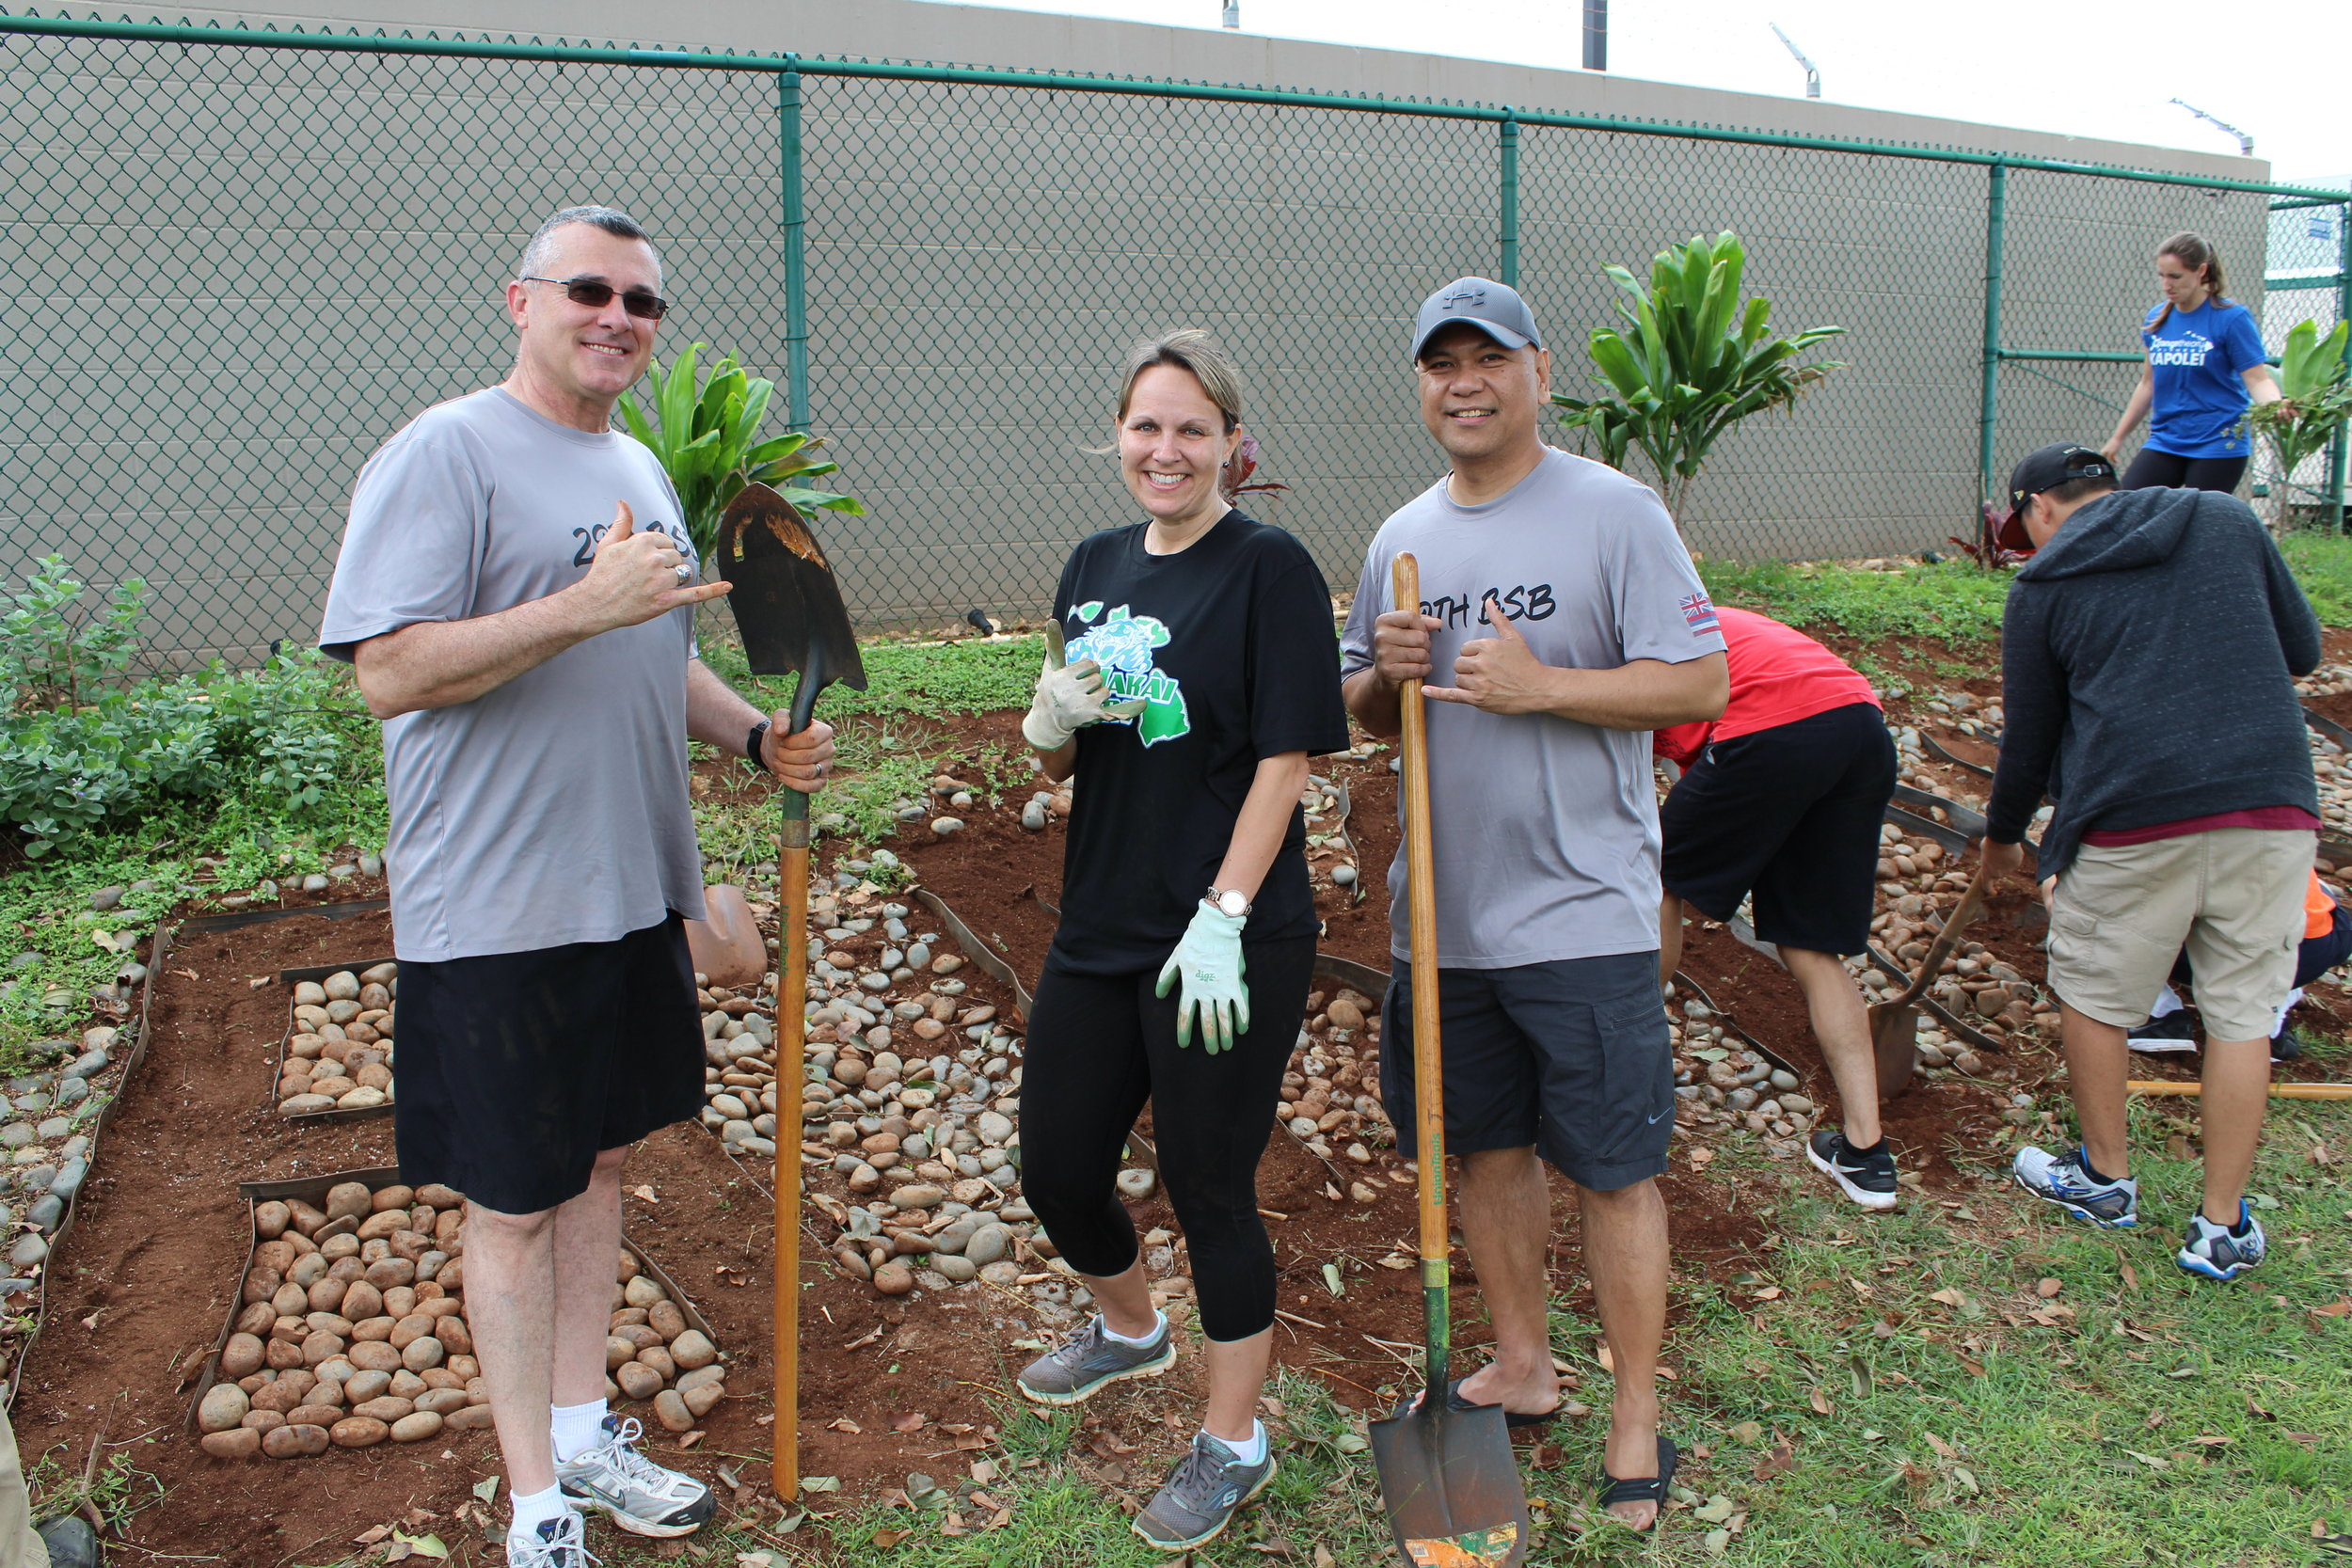 Three volunteers at Ewa Makai taking a break from the landscape project to smile for the camera.